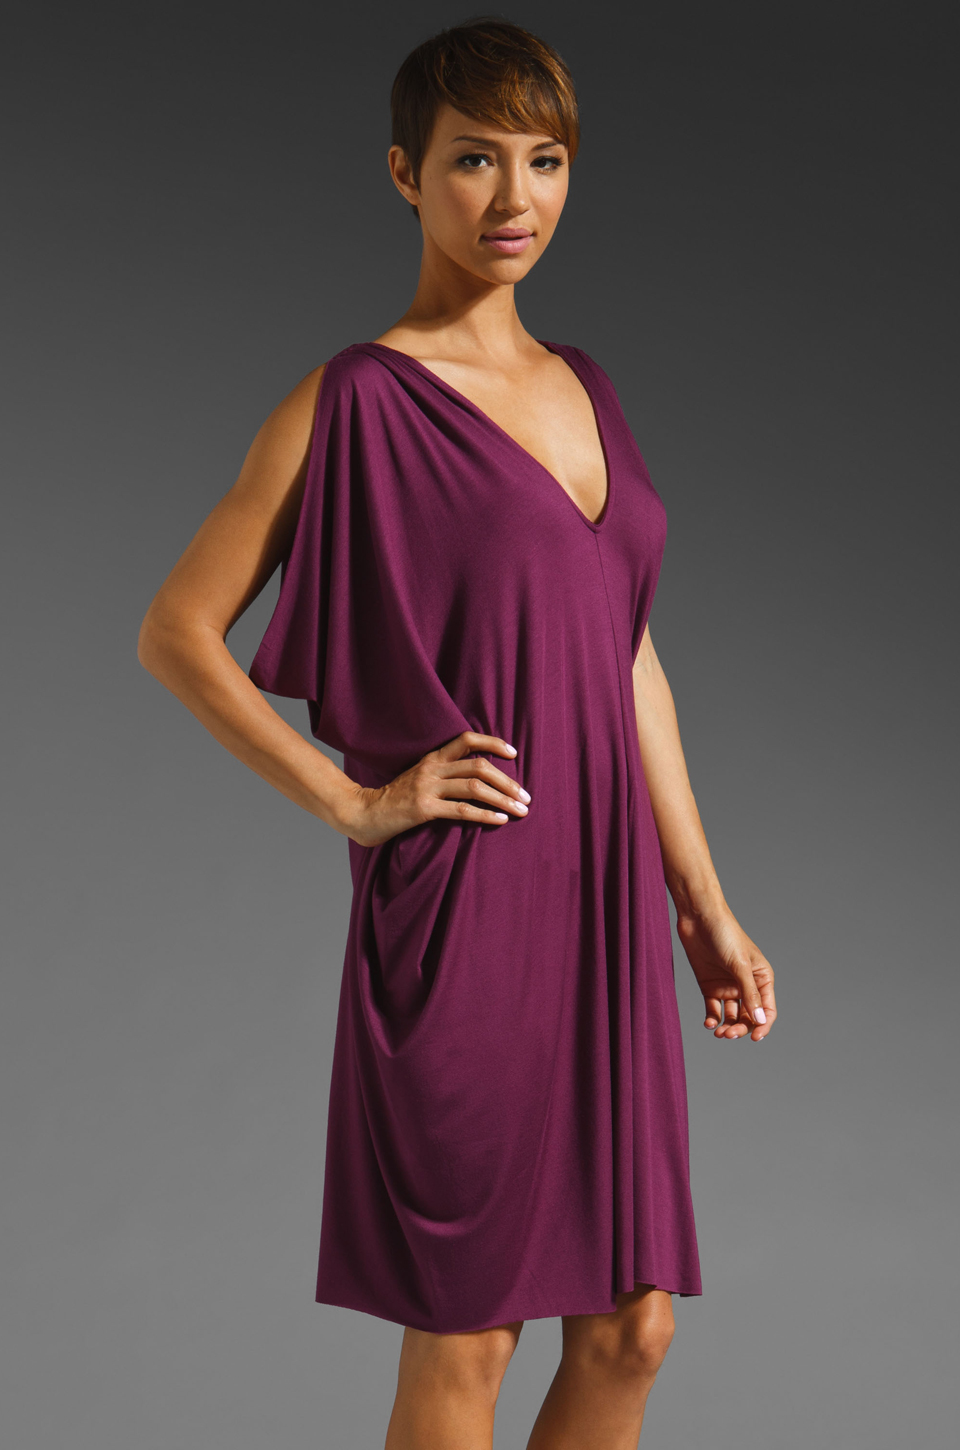 Rachel Pally Barret Drape Dress in Bordeaux